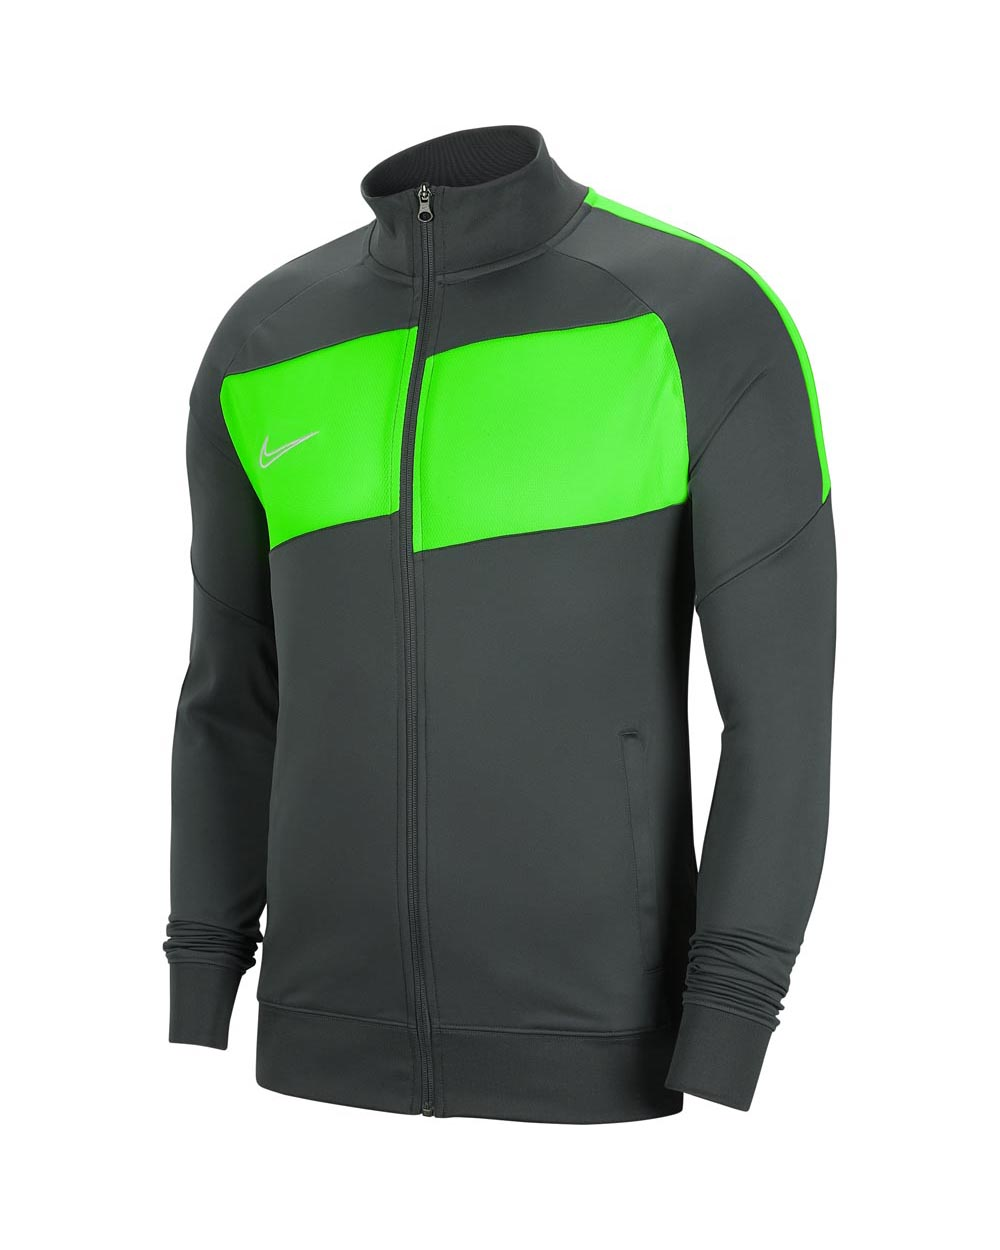 Veste de Survetement de Football Nike Academy Pro pour homme | EKINSPORT